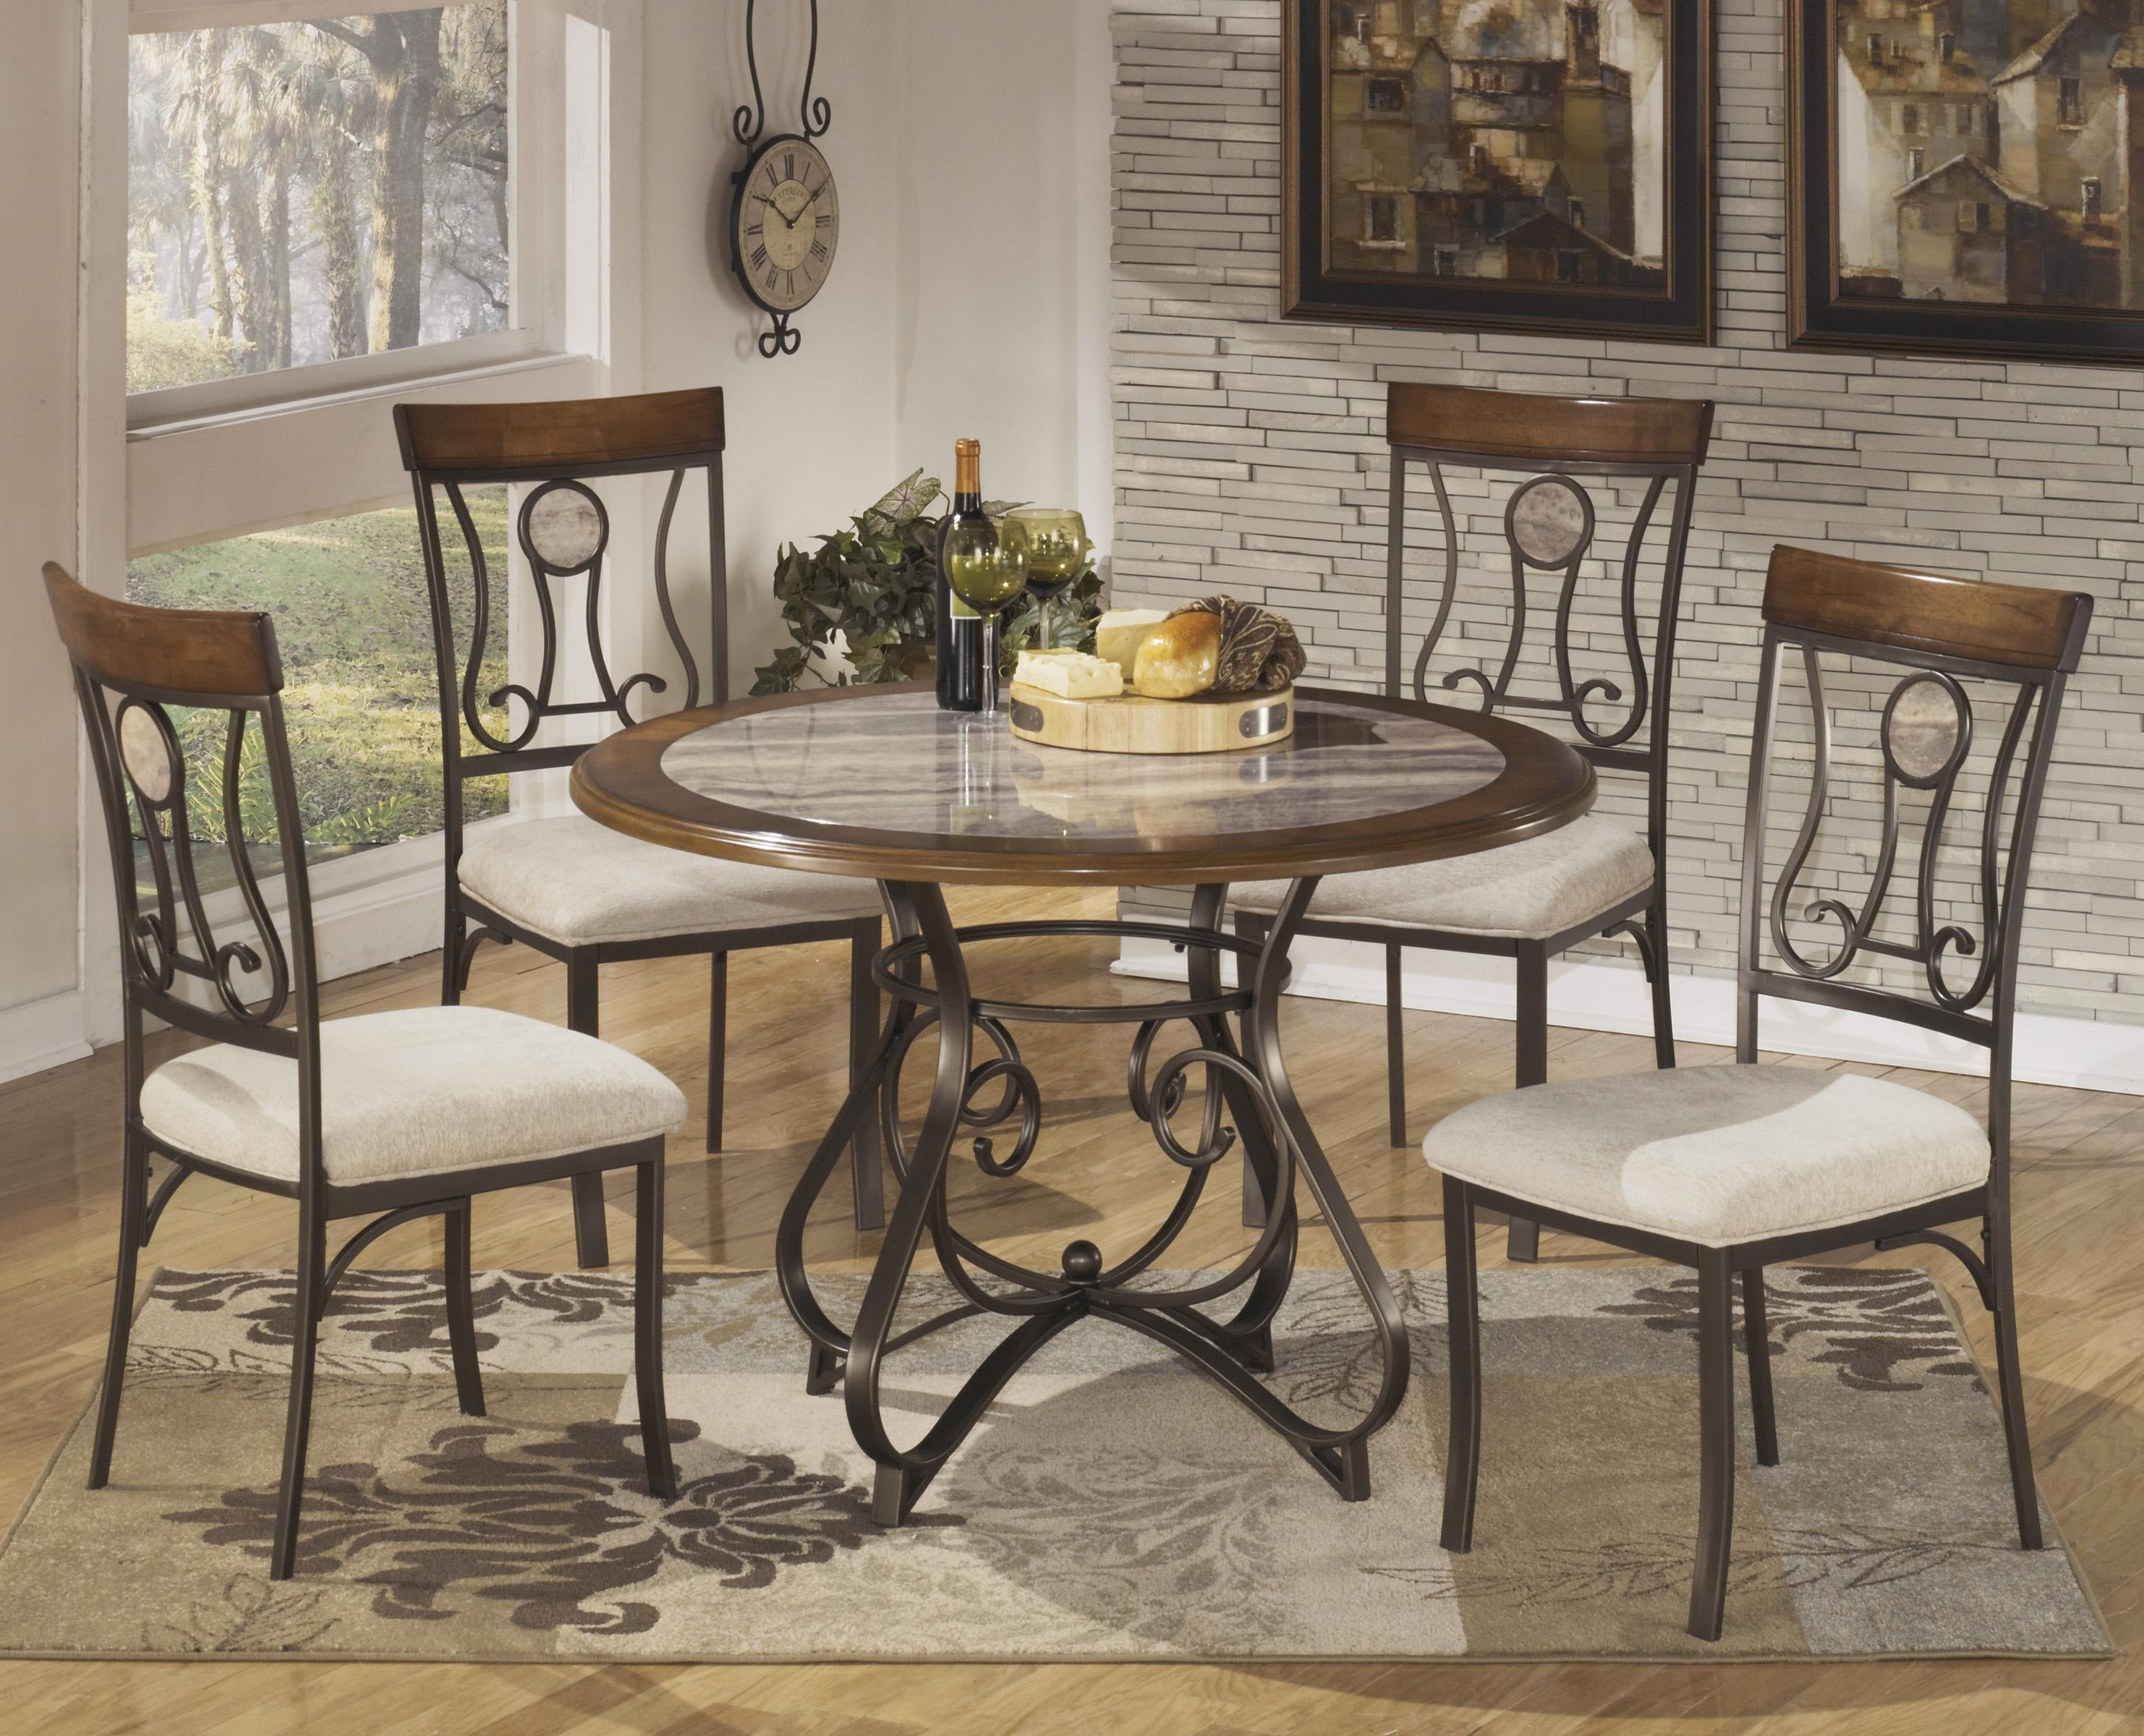 5 Piece Round Dining Table Set With Steel Frame U0026 Faux Marble Table Top